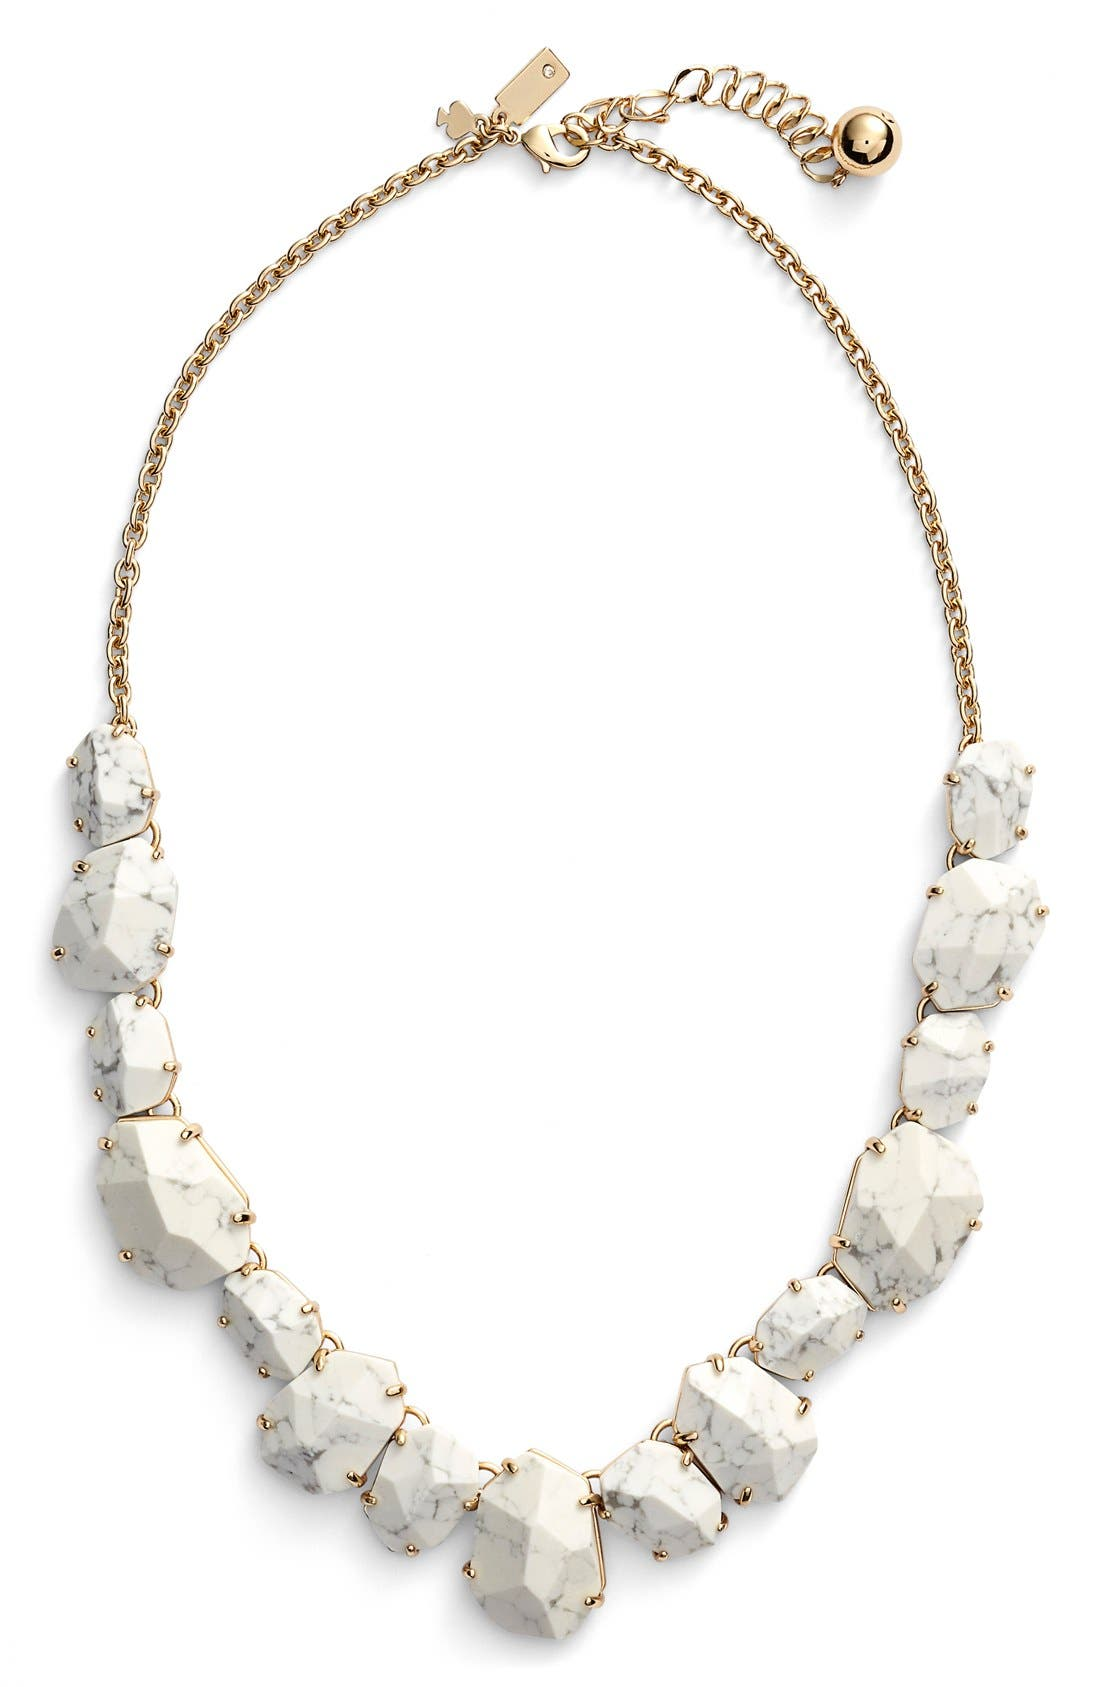 Main Image - kate spade new york 'quarry gems' frontal necklace